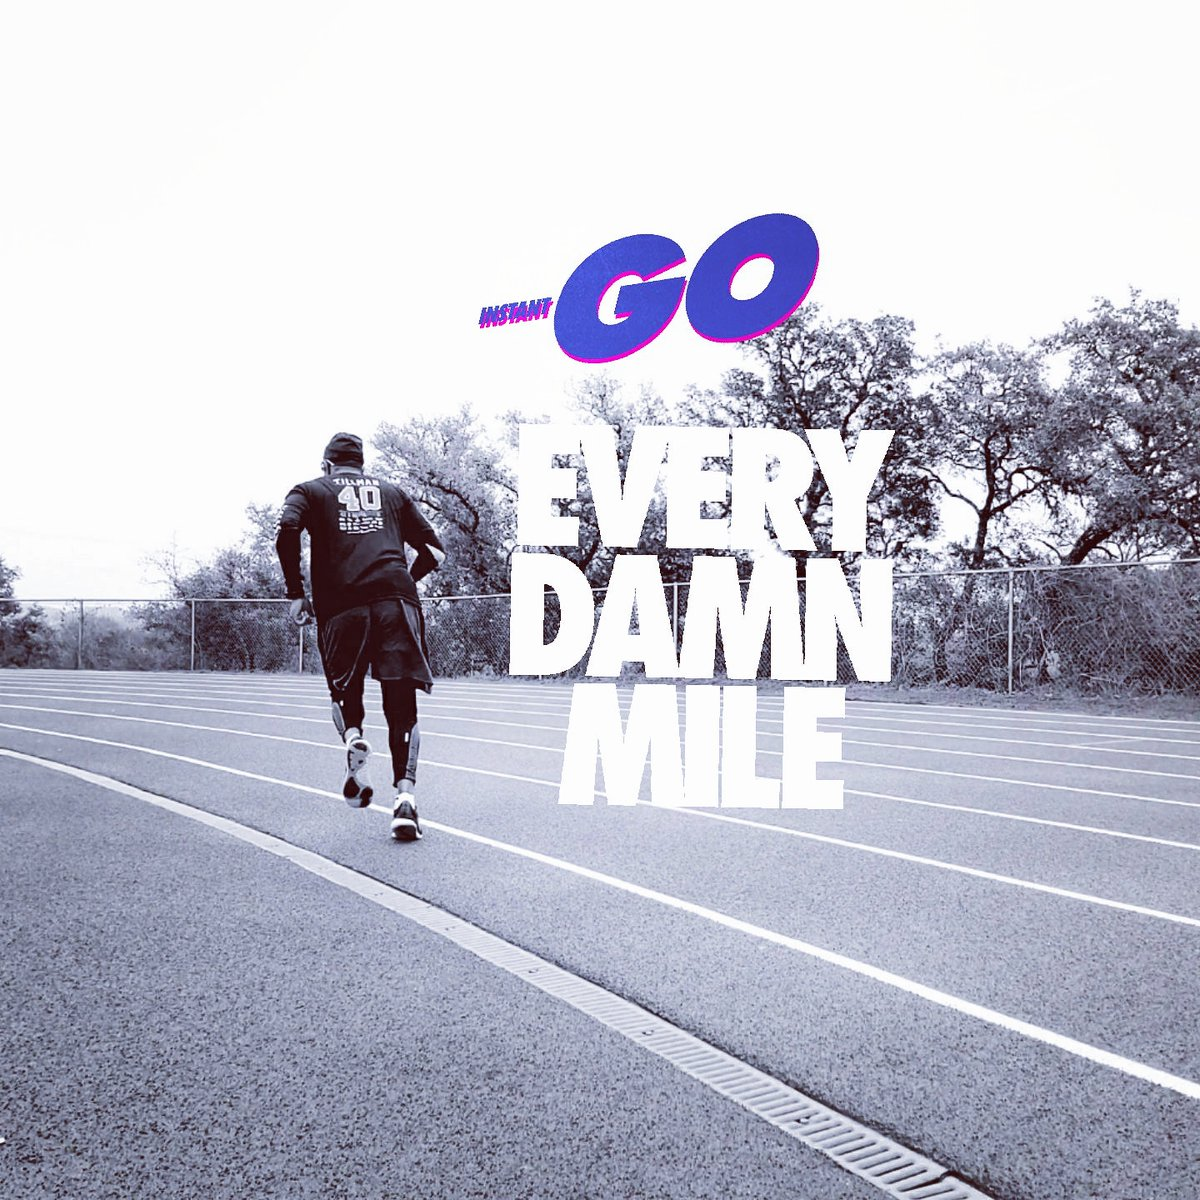 Go every damn mile. #RunSessRun  #running #run #runner #fitness #runners #trailrunning #training #instarunners #runningmotivation #marathon #k #runnersofinstagram #sport #motivation #workout #fit #instarun #triathlon #garmin #runhappy #trail #instarunner #gym #nike #corridaderua<br>http://pic.twitter.com/UixTWRi0dK